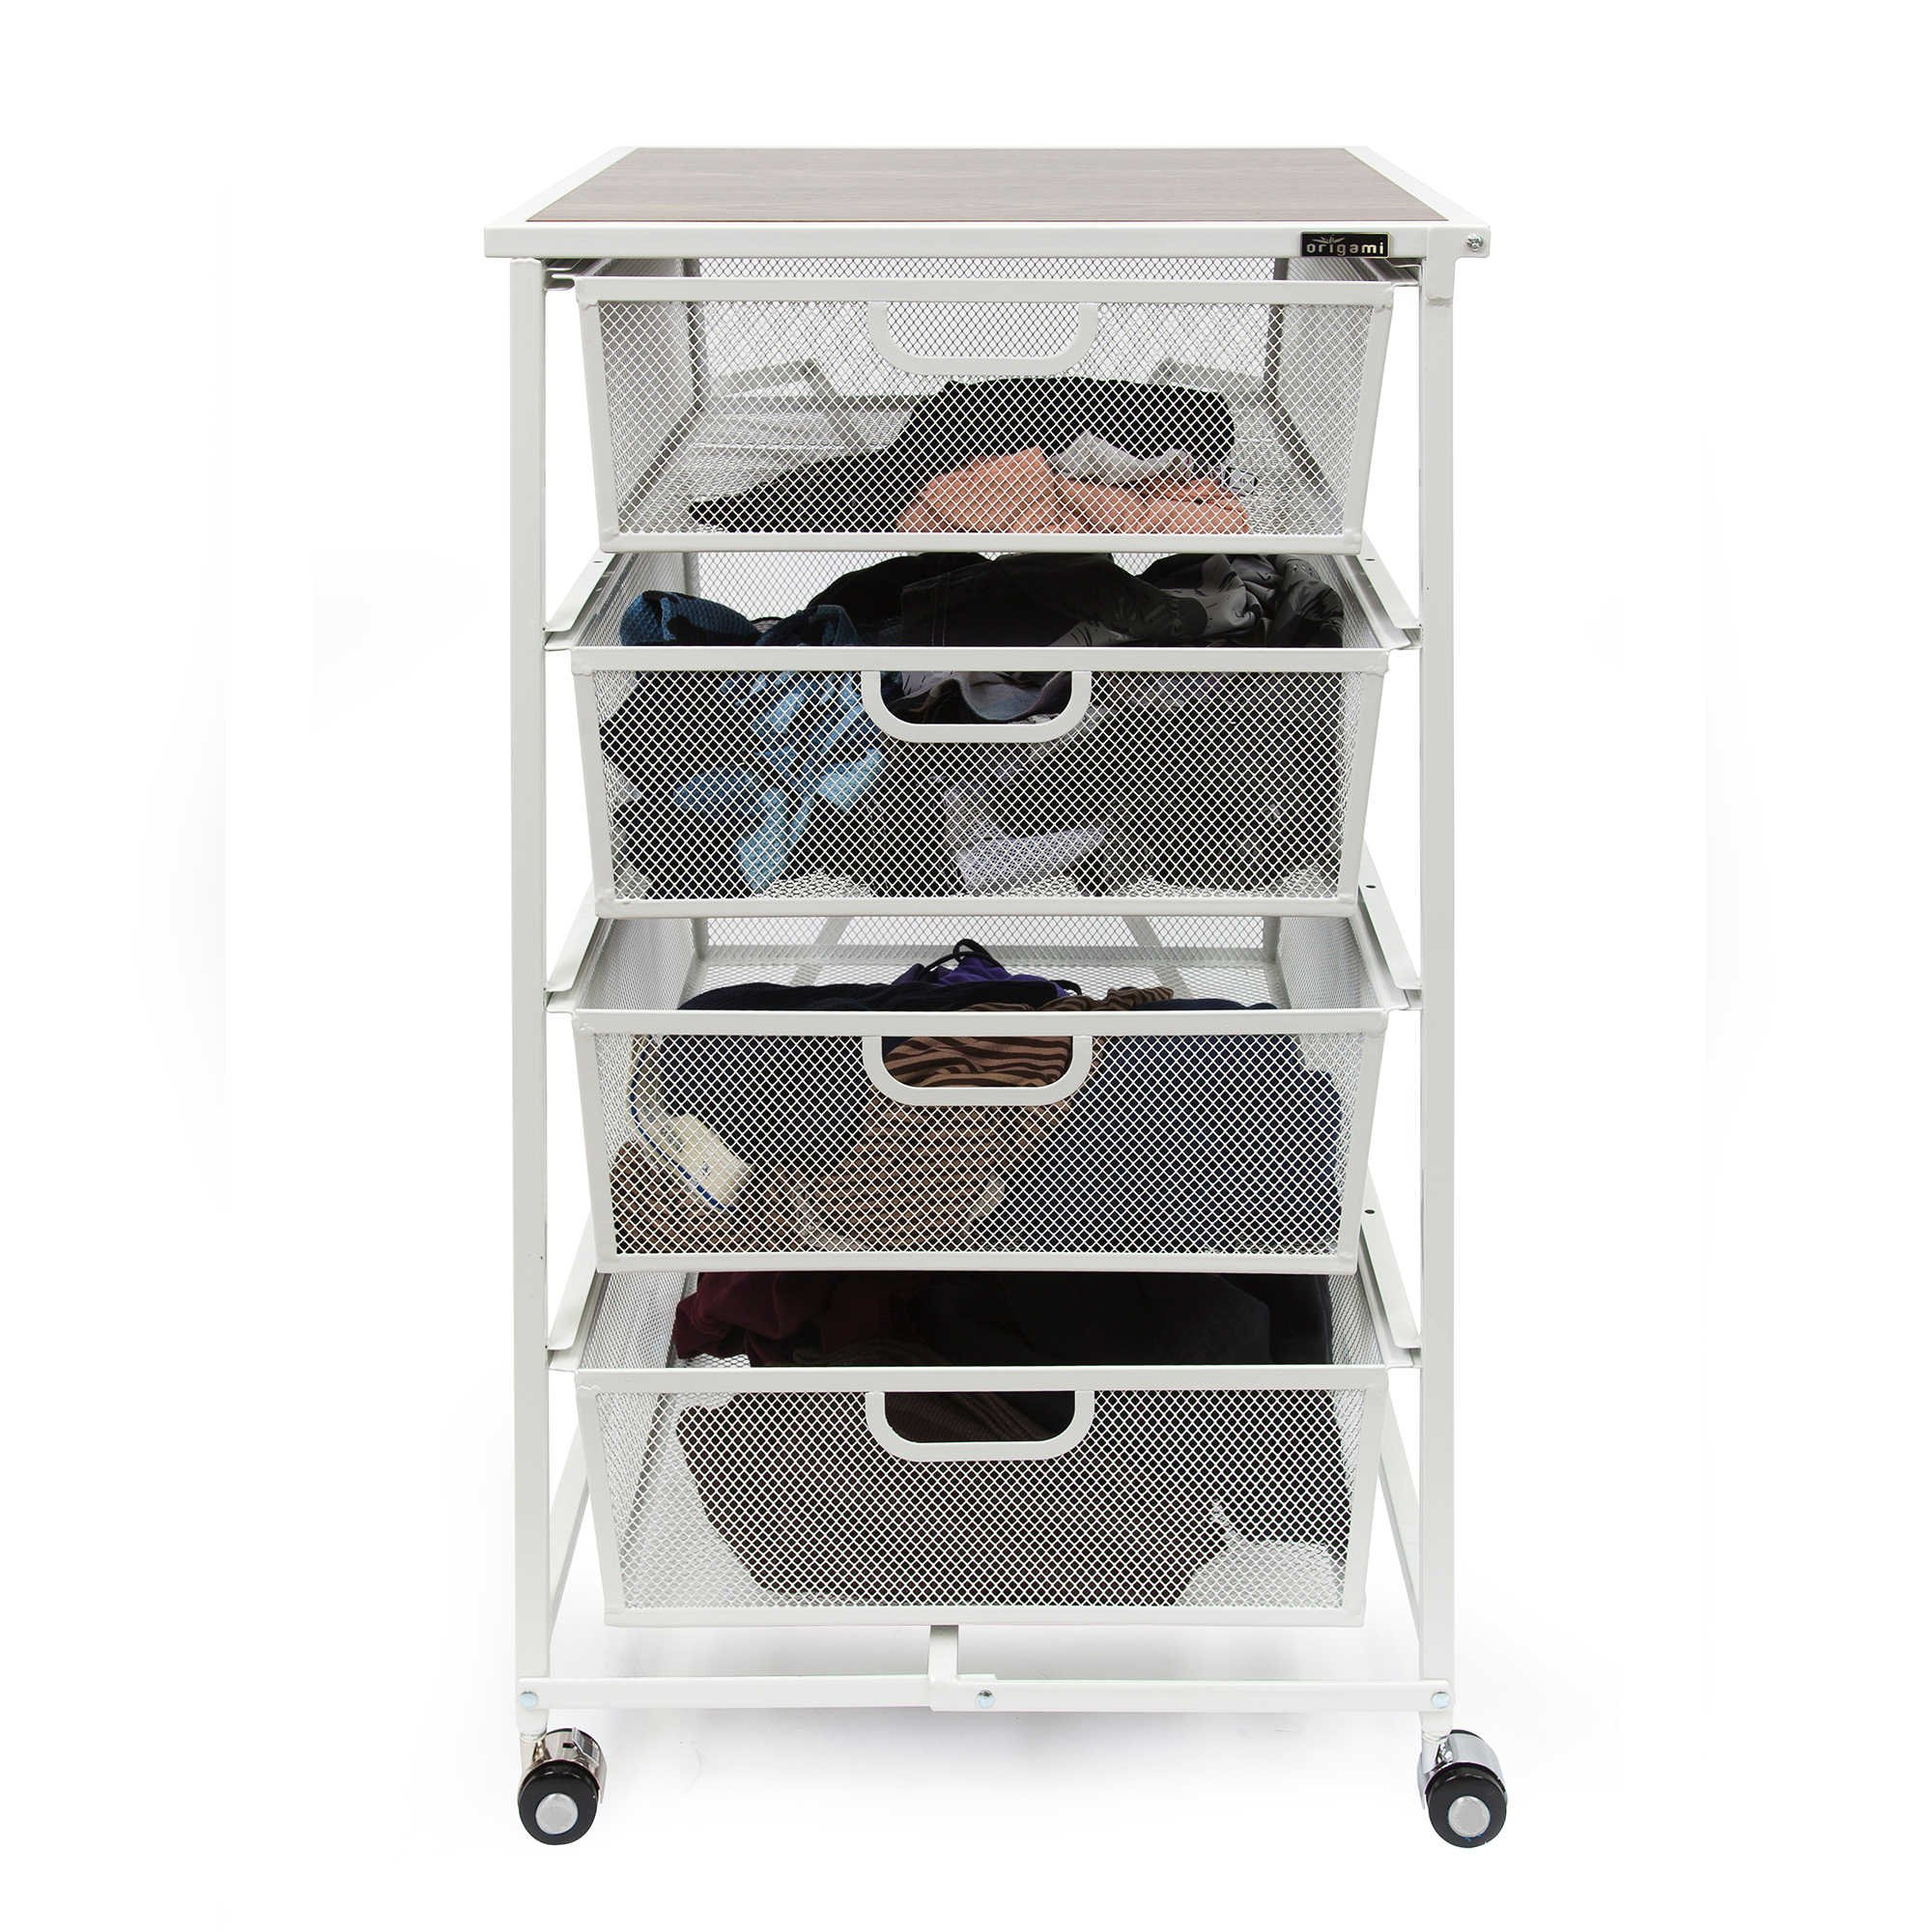 Origami 4-Tier Kitchen Drawer in White, Metal/wood Construction